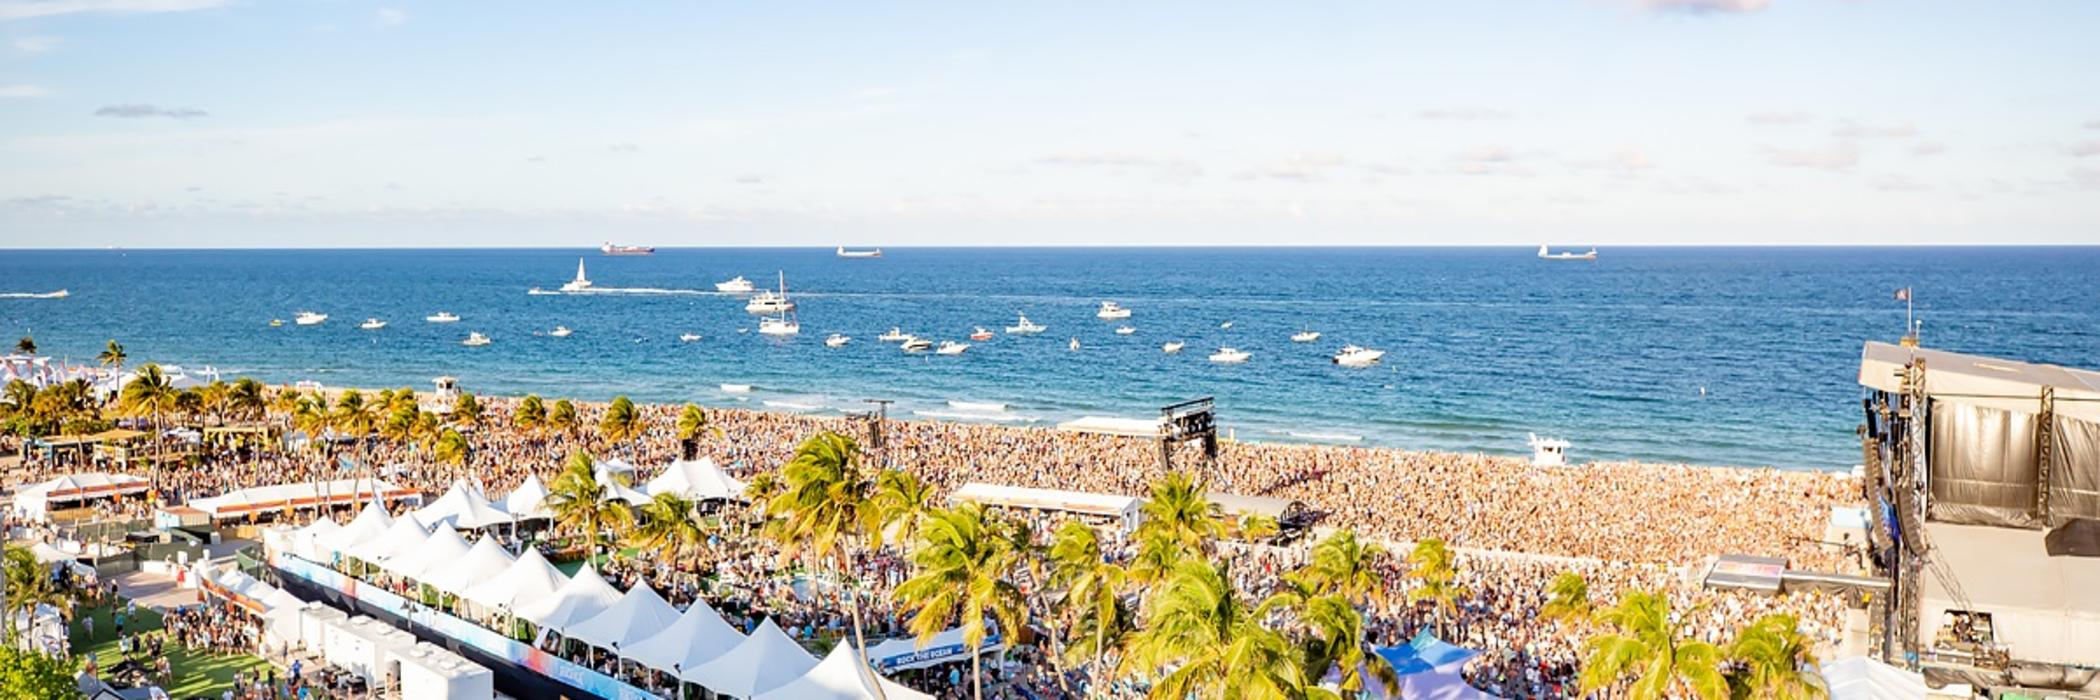 Aerial photo of crowds of listeners on Fort Lauderdale Beach with boats anchored in the waters off-shore